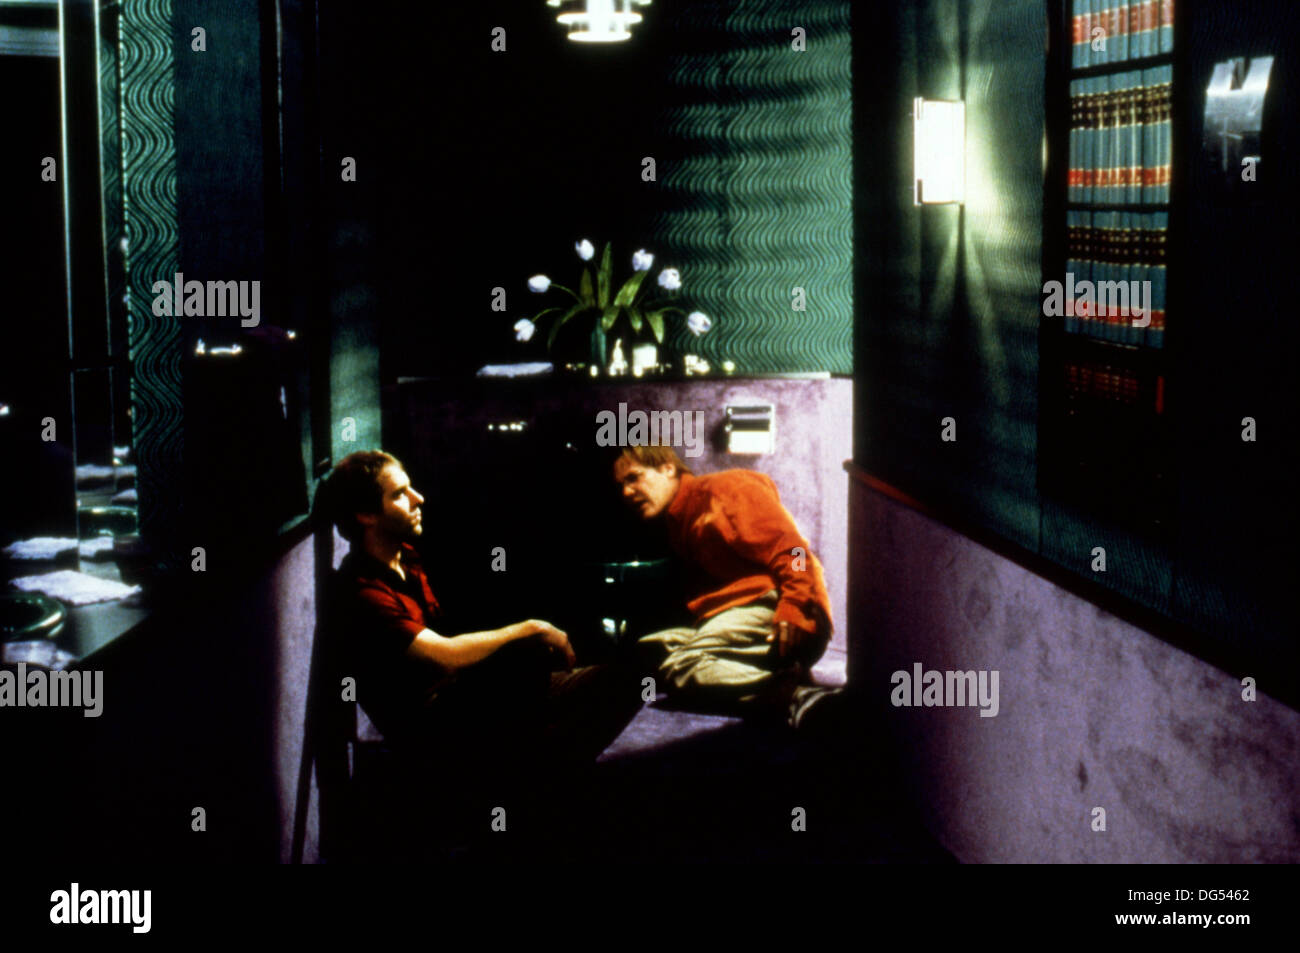 BEST LAID PLANS 1999) ALESSANDRO NIVOLA, JOSH BROLIN, MIKE BARKER DIR) BLPL 001 MOVIESTORE COLLECTION LTD - Stock Image